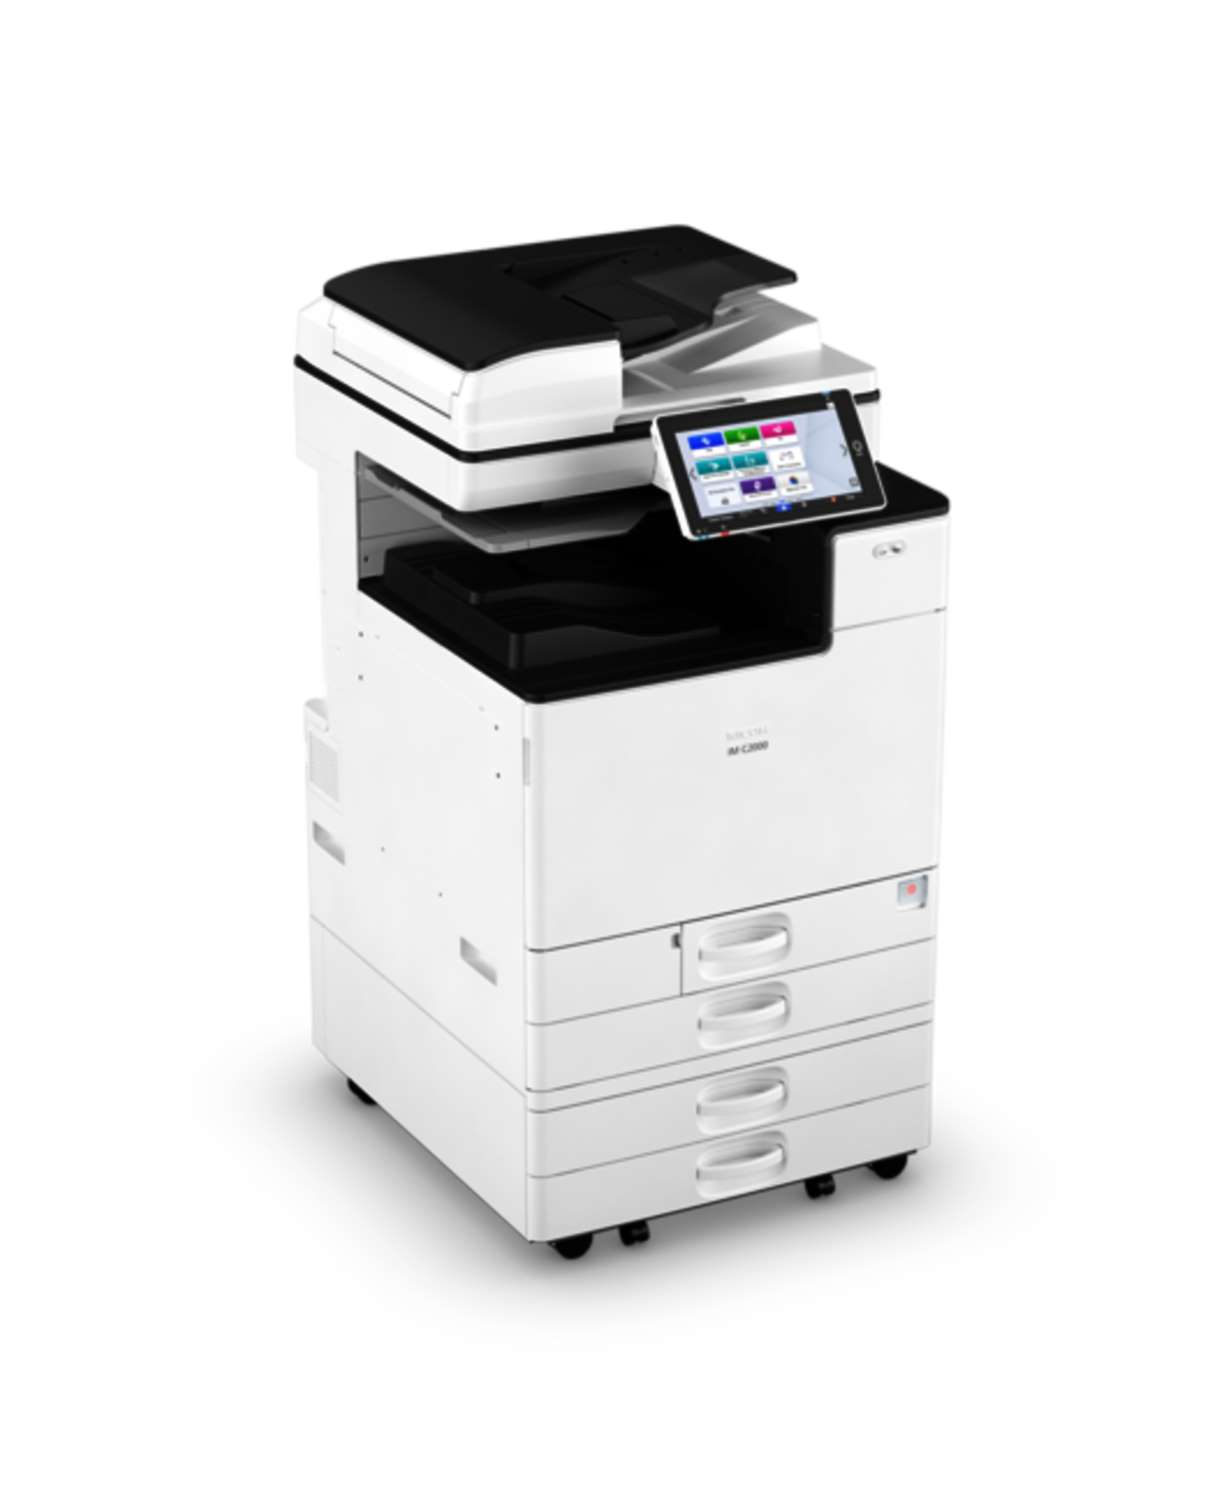 Office Photocopiers in Carlisle, Cumbria